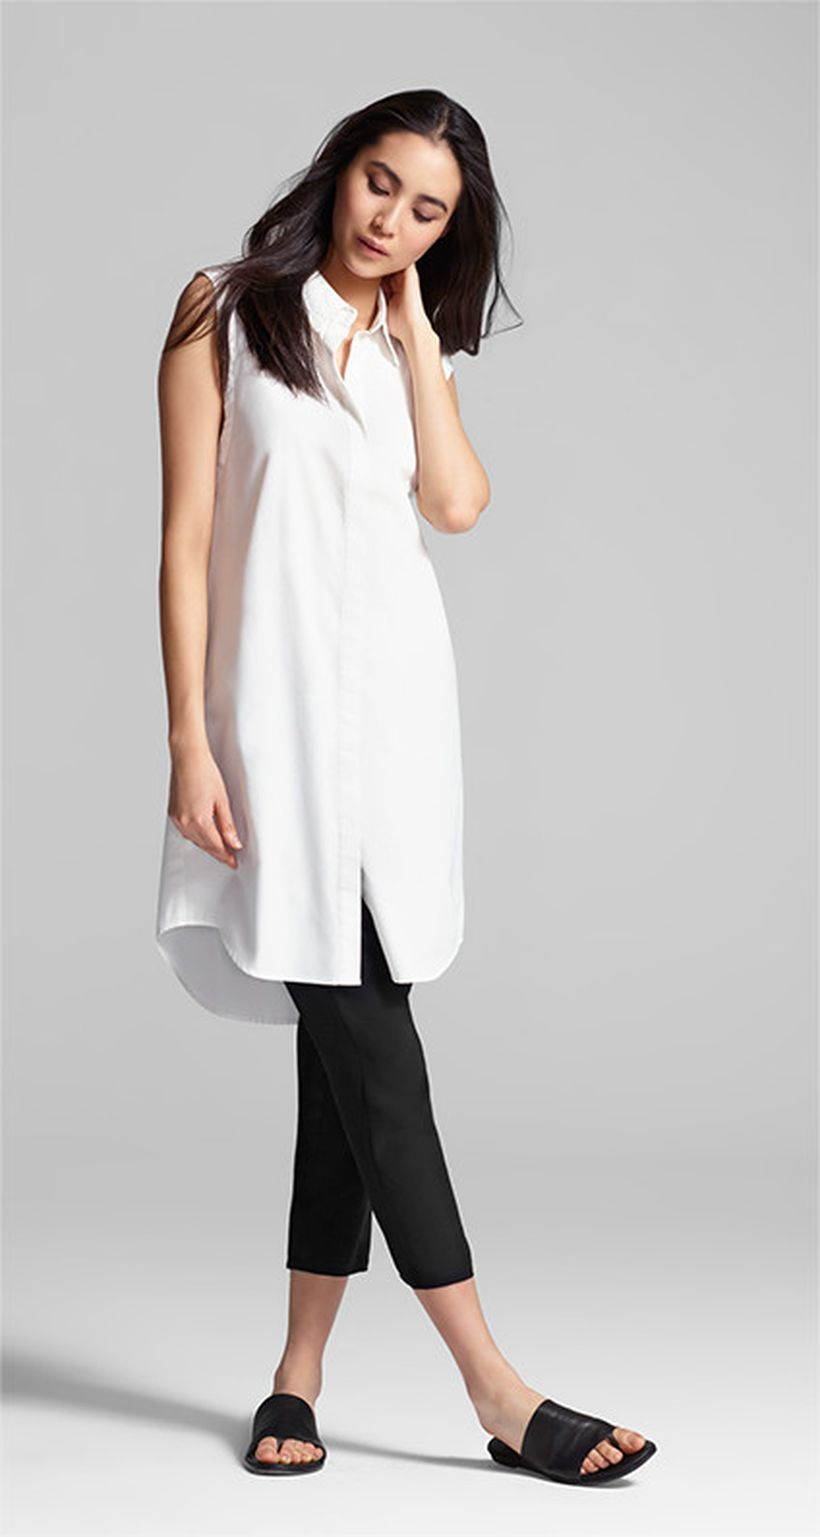 Stunning white shirtdresses outfits 9